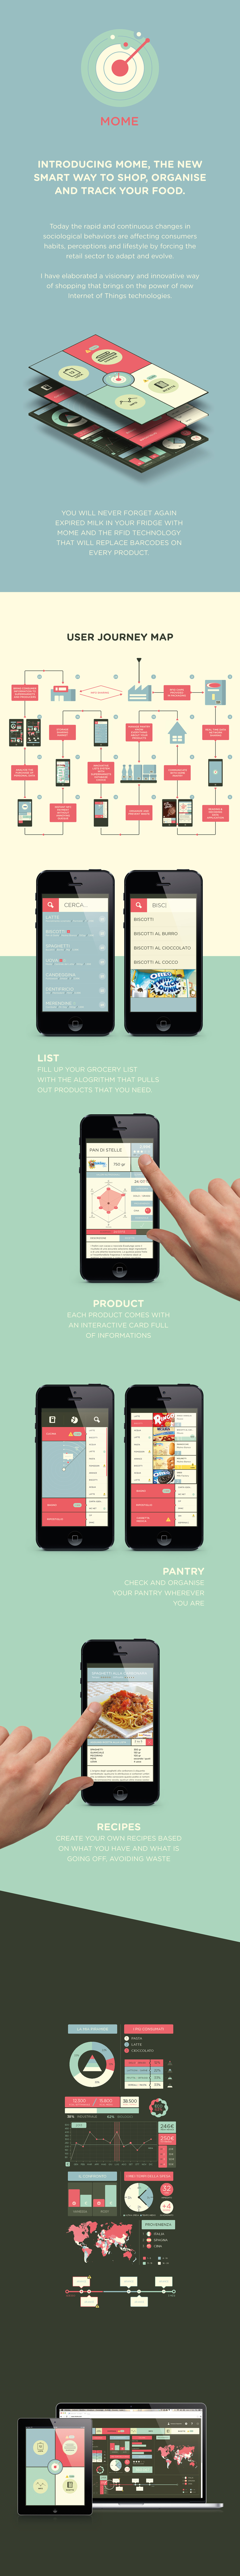 app mobile phone Smart Grocery list shop Food  track rfid appstore Technology Pantry navigation recipes